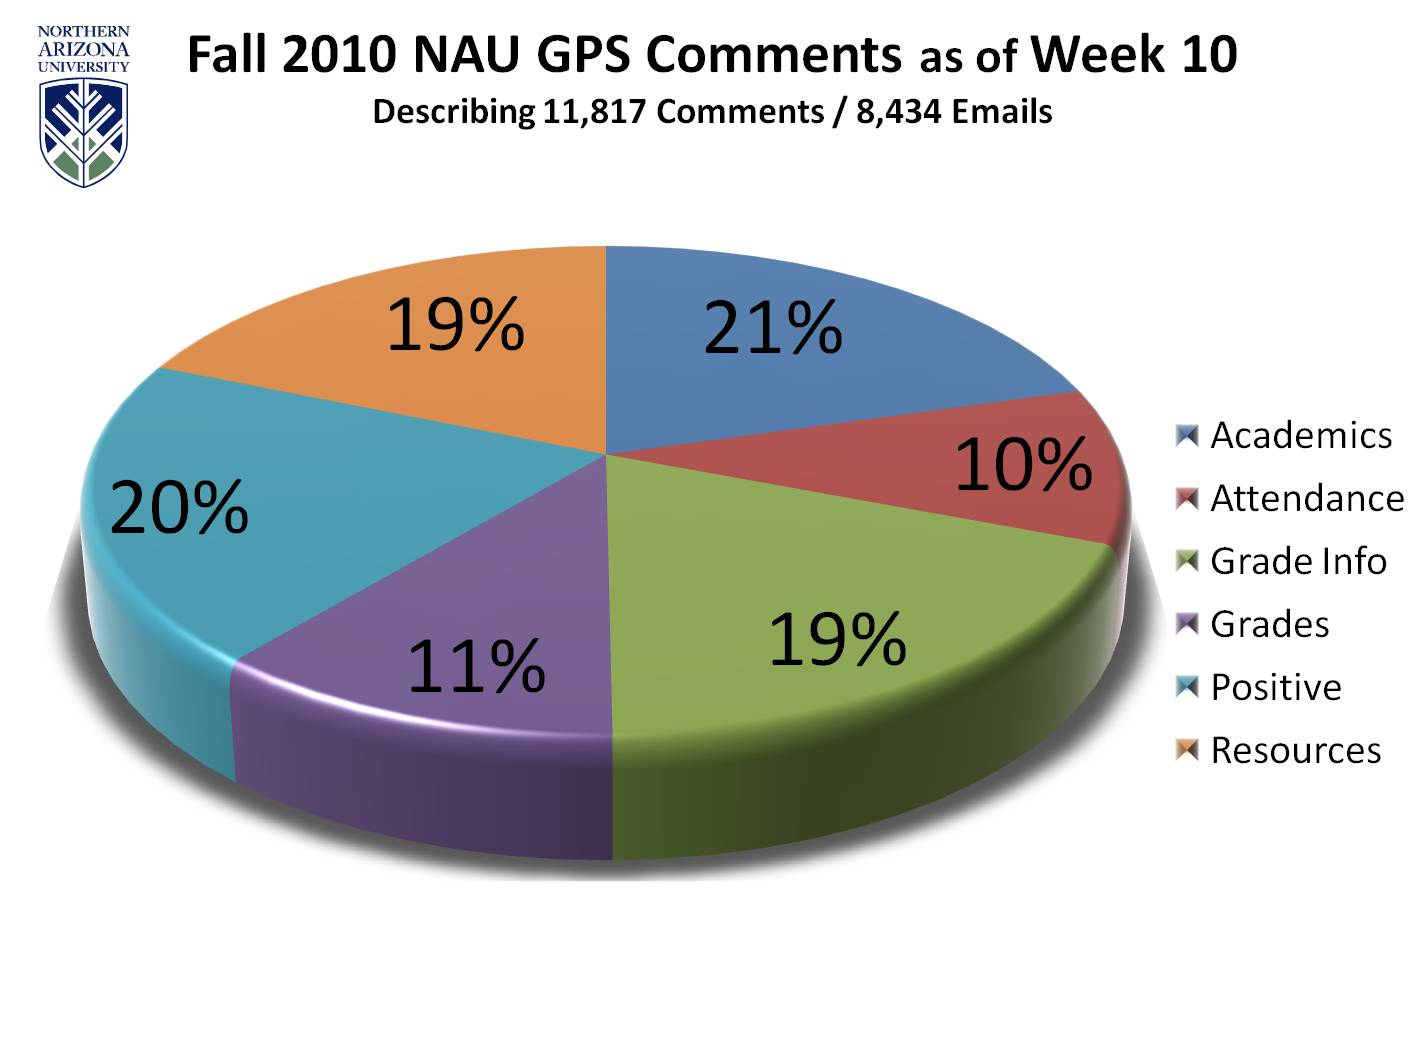 GPS: Shaping Student Success One Conversation at a Time